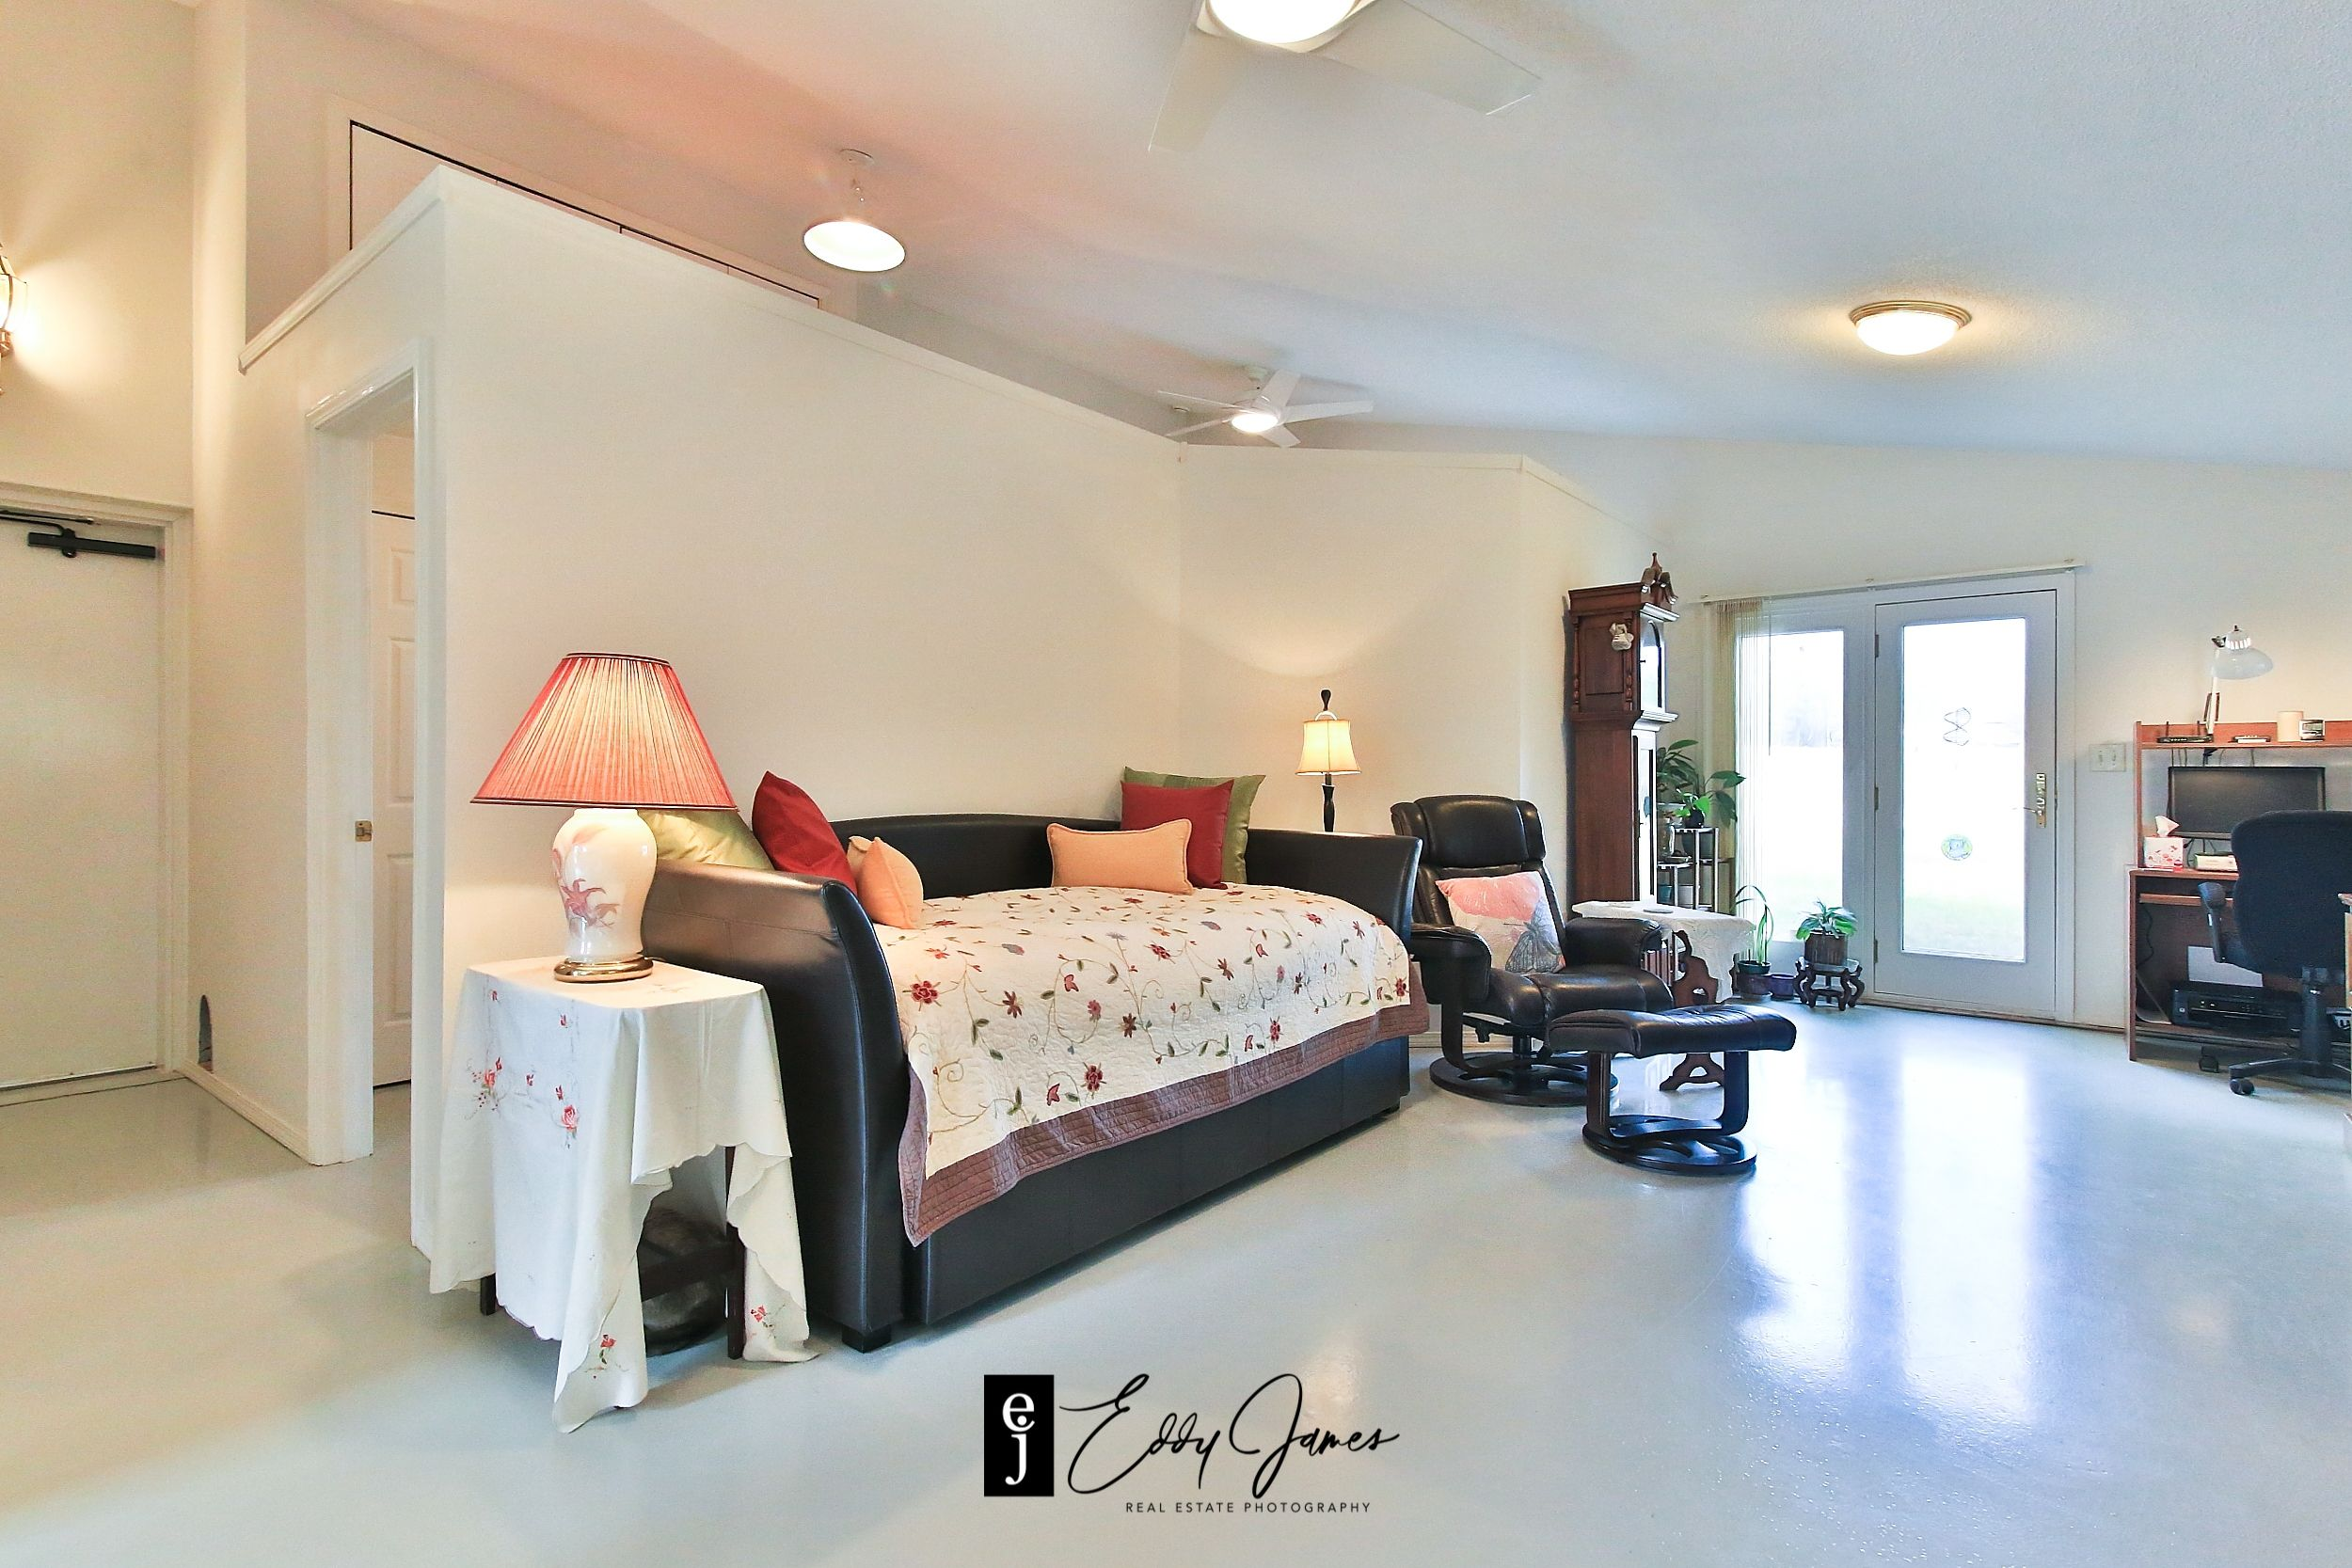 Incredible Air Park property we photographed. Bring your